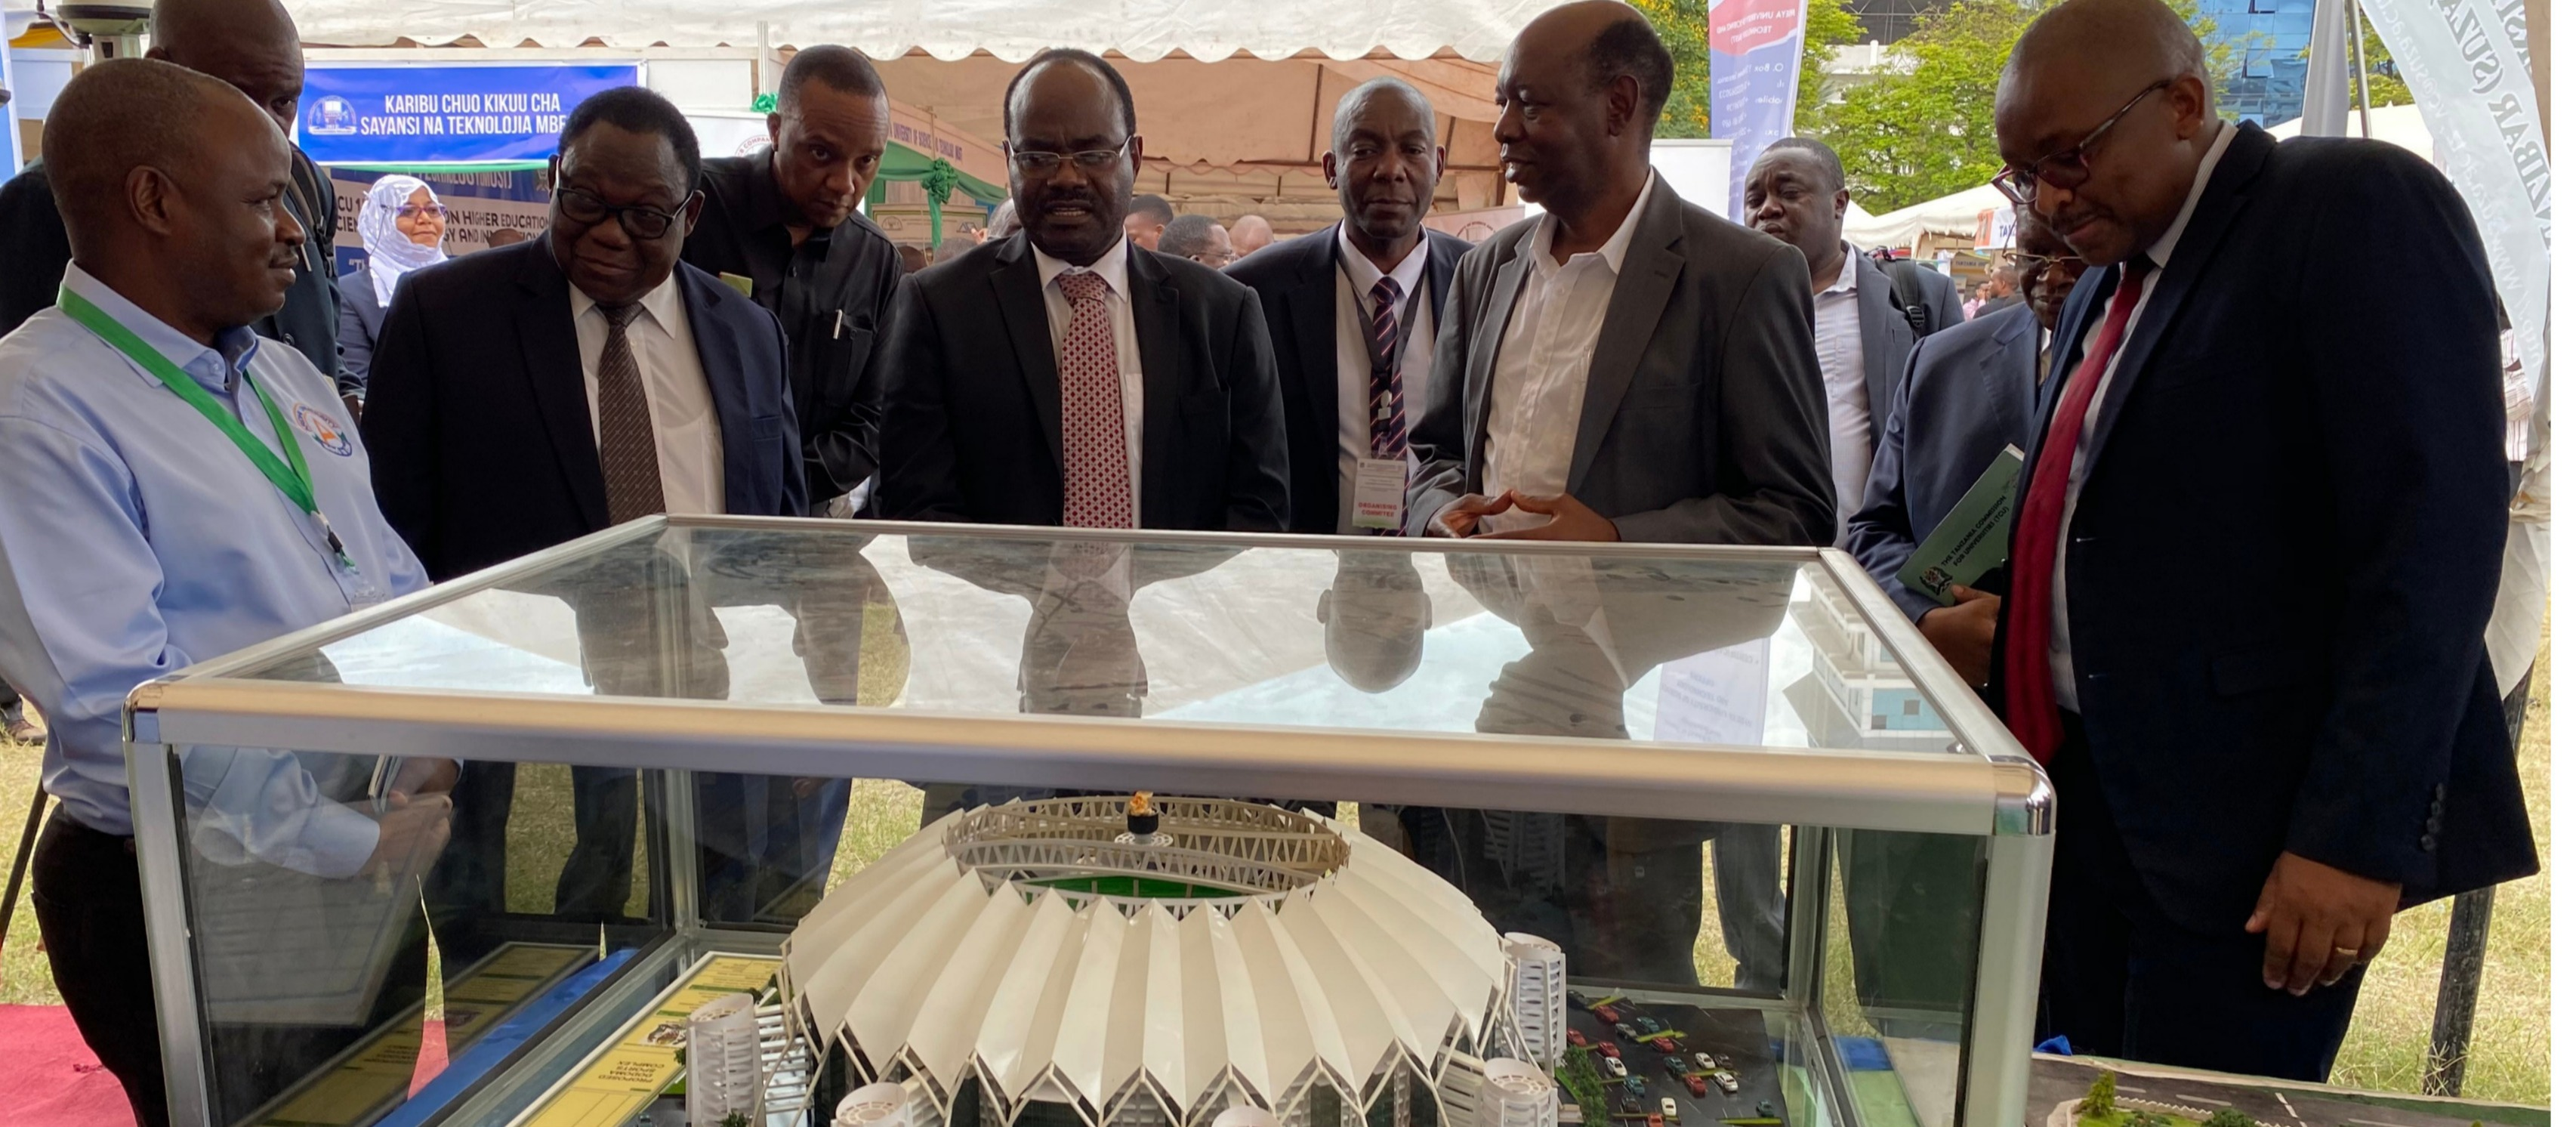 The Permanent Secretary for the Ministry of Education, Science and Technology Dr. Leonard Akwilapo shares a light moment with Ardhi University team while viewing a proposed Dodoma sports complex model designed by Ardhi University shortly after visiting exhibitors' pavilions during the opening ceremo...